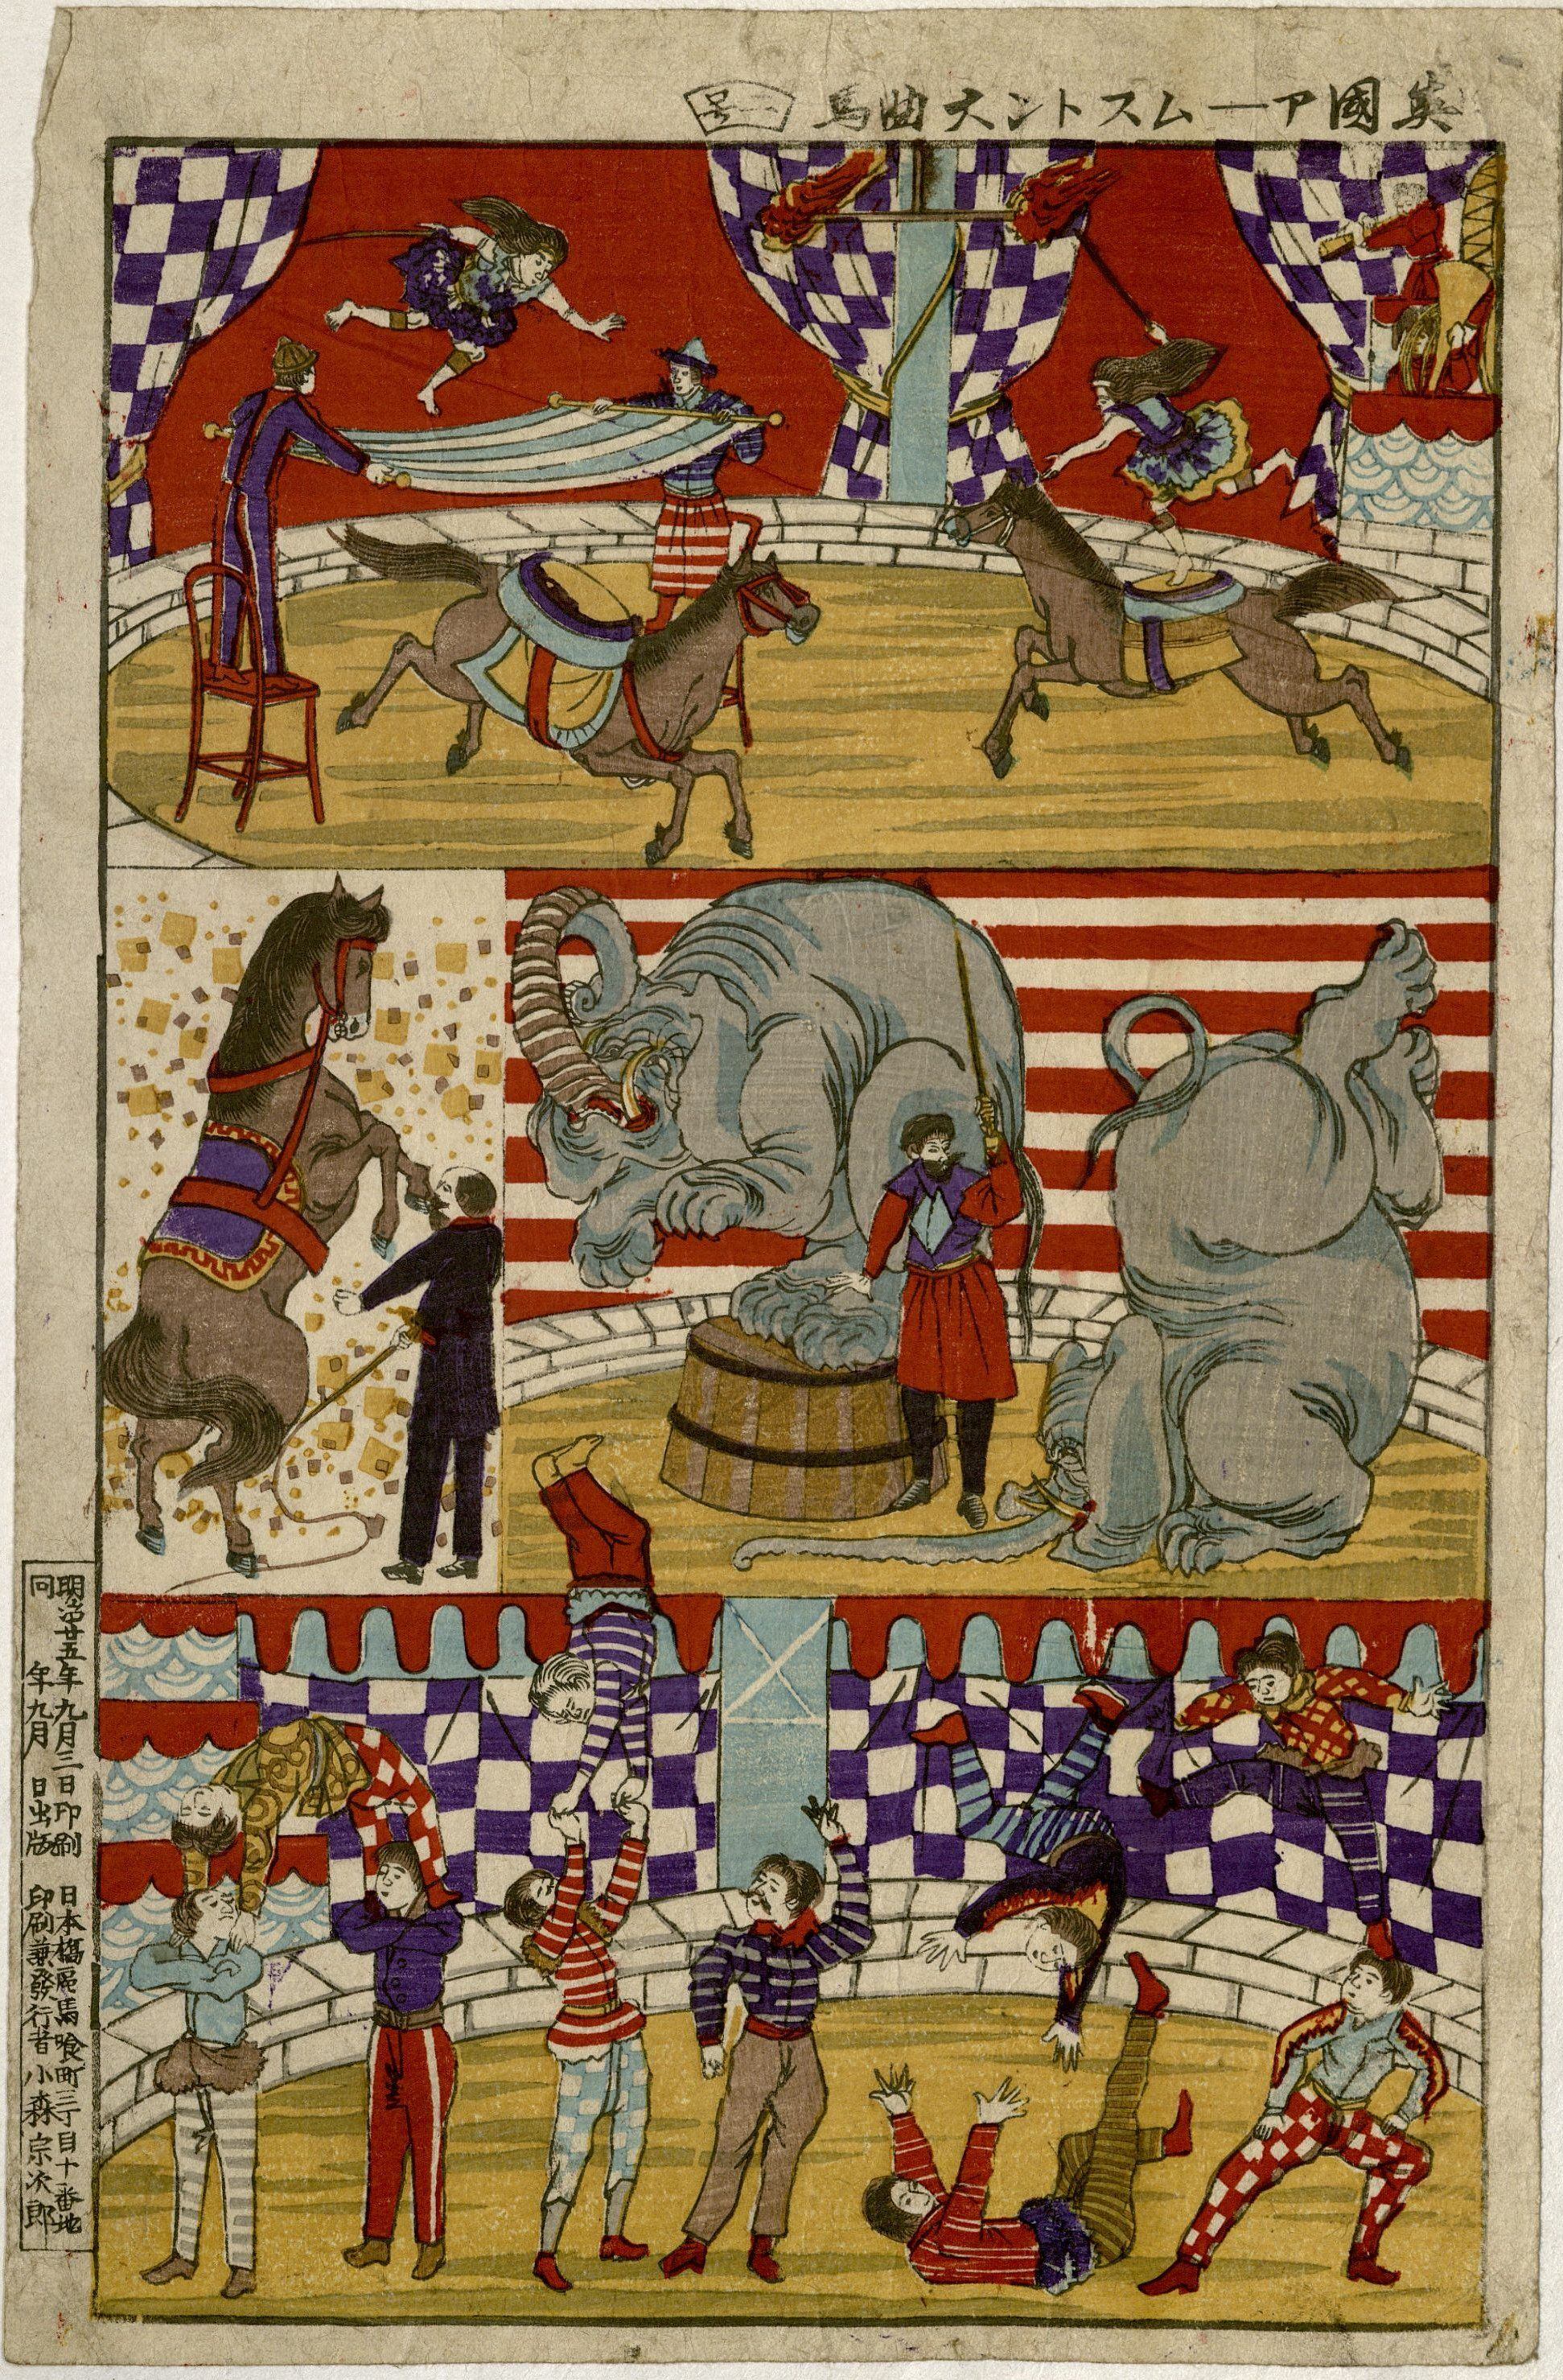 Armstrong's Circus : colored print, 1892. MS Thr 949 (713)